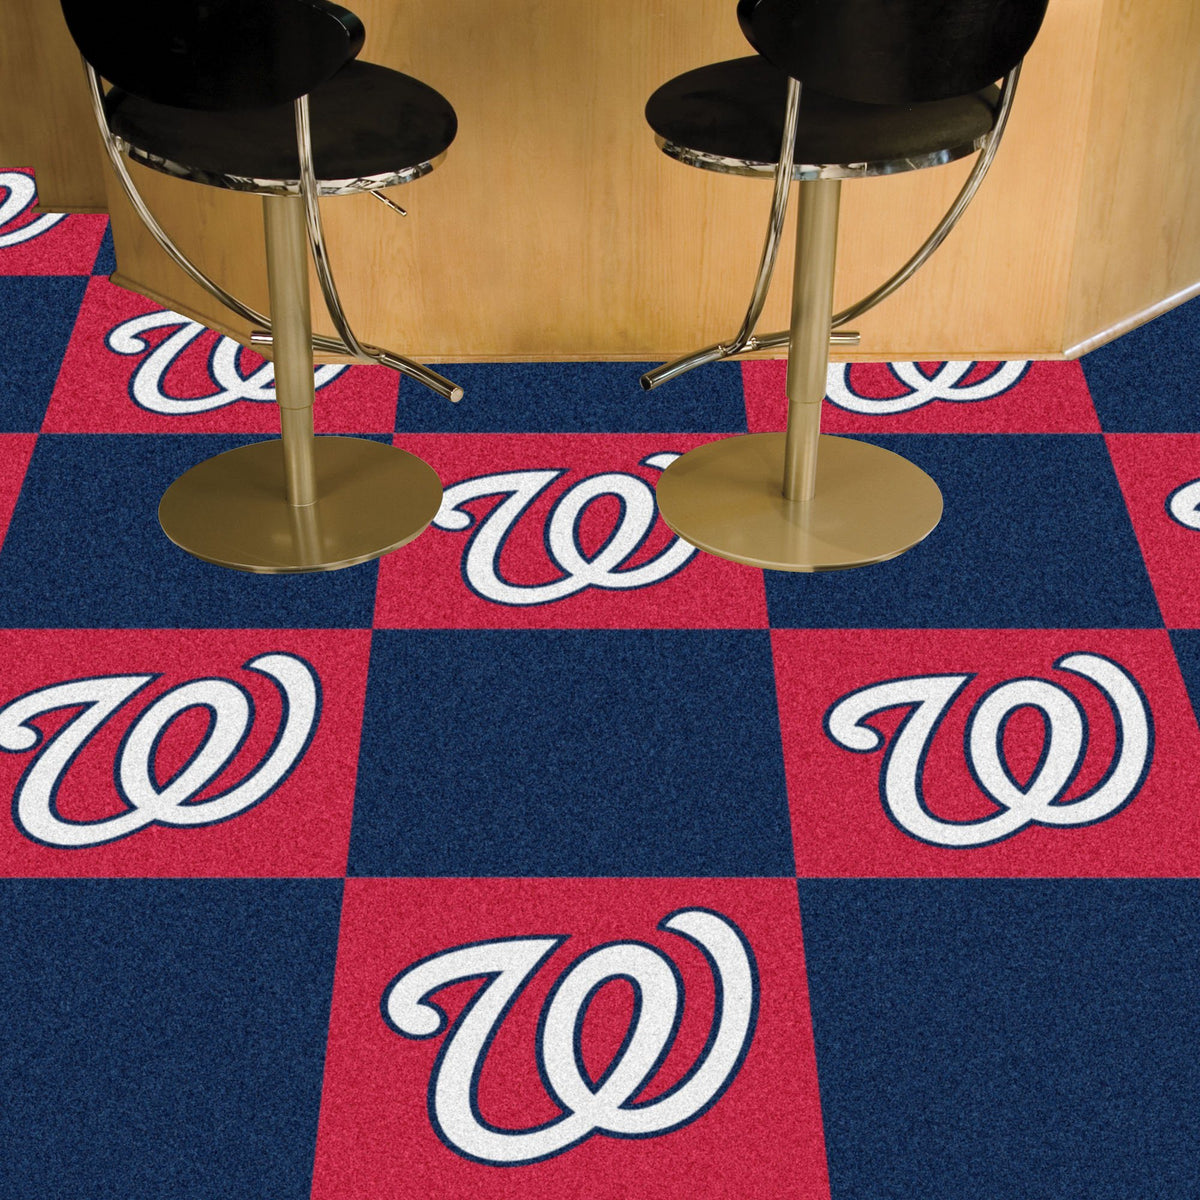 MLB - Team Carpet Tiles MLB Mats, Carpet Tile Flooring, Team Carpet Tiles, MLB, Home Fan Mats Washington Nationals